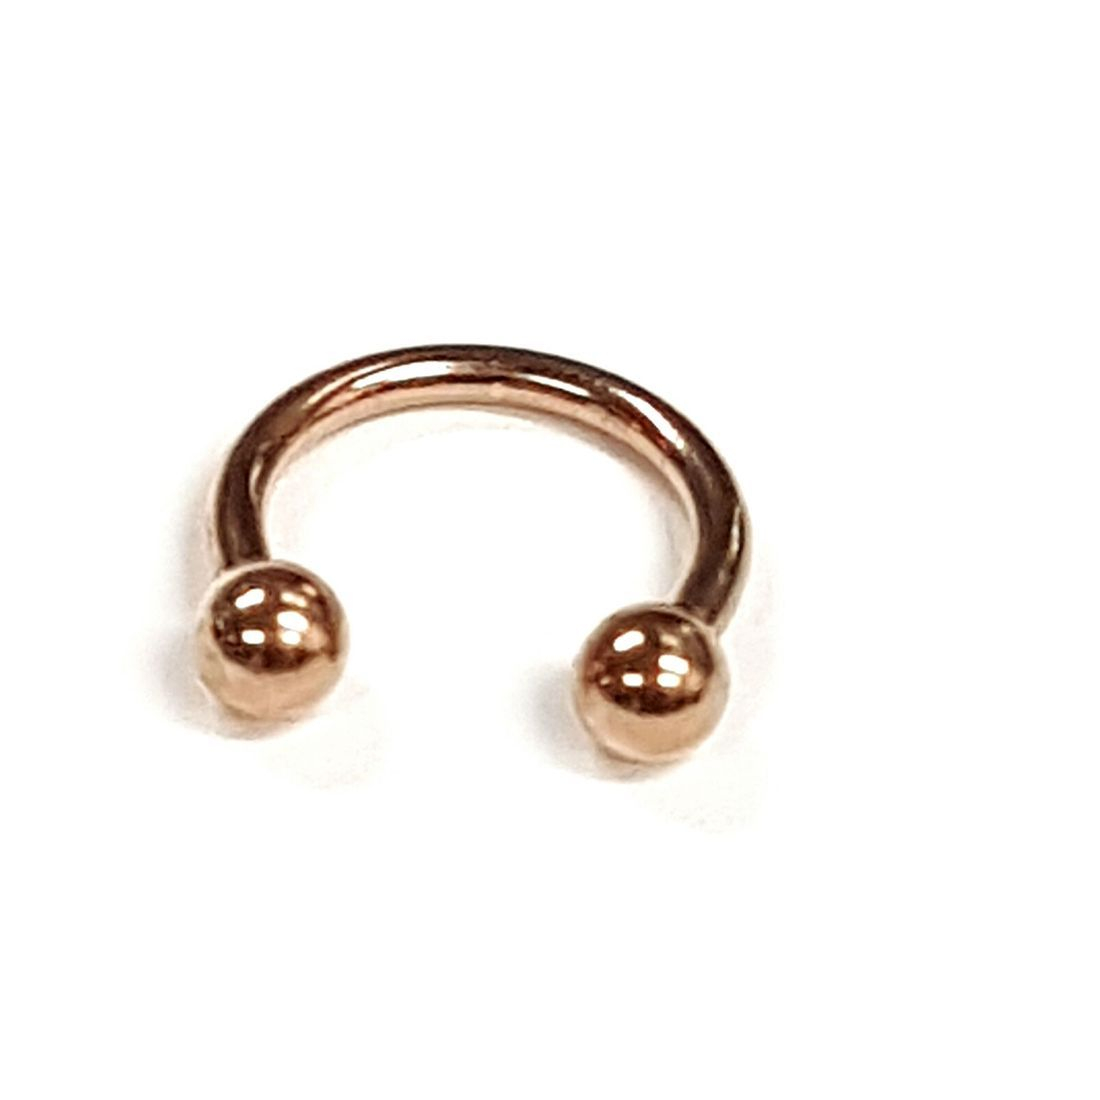 1.2mm x 8mm Rose Gold Horseshoe 3mm balls   available at Kazbah online and our Leicester City Centre Shop